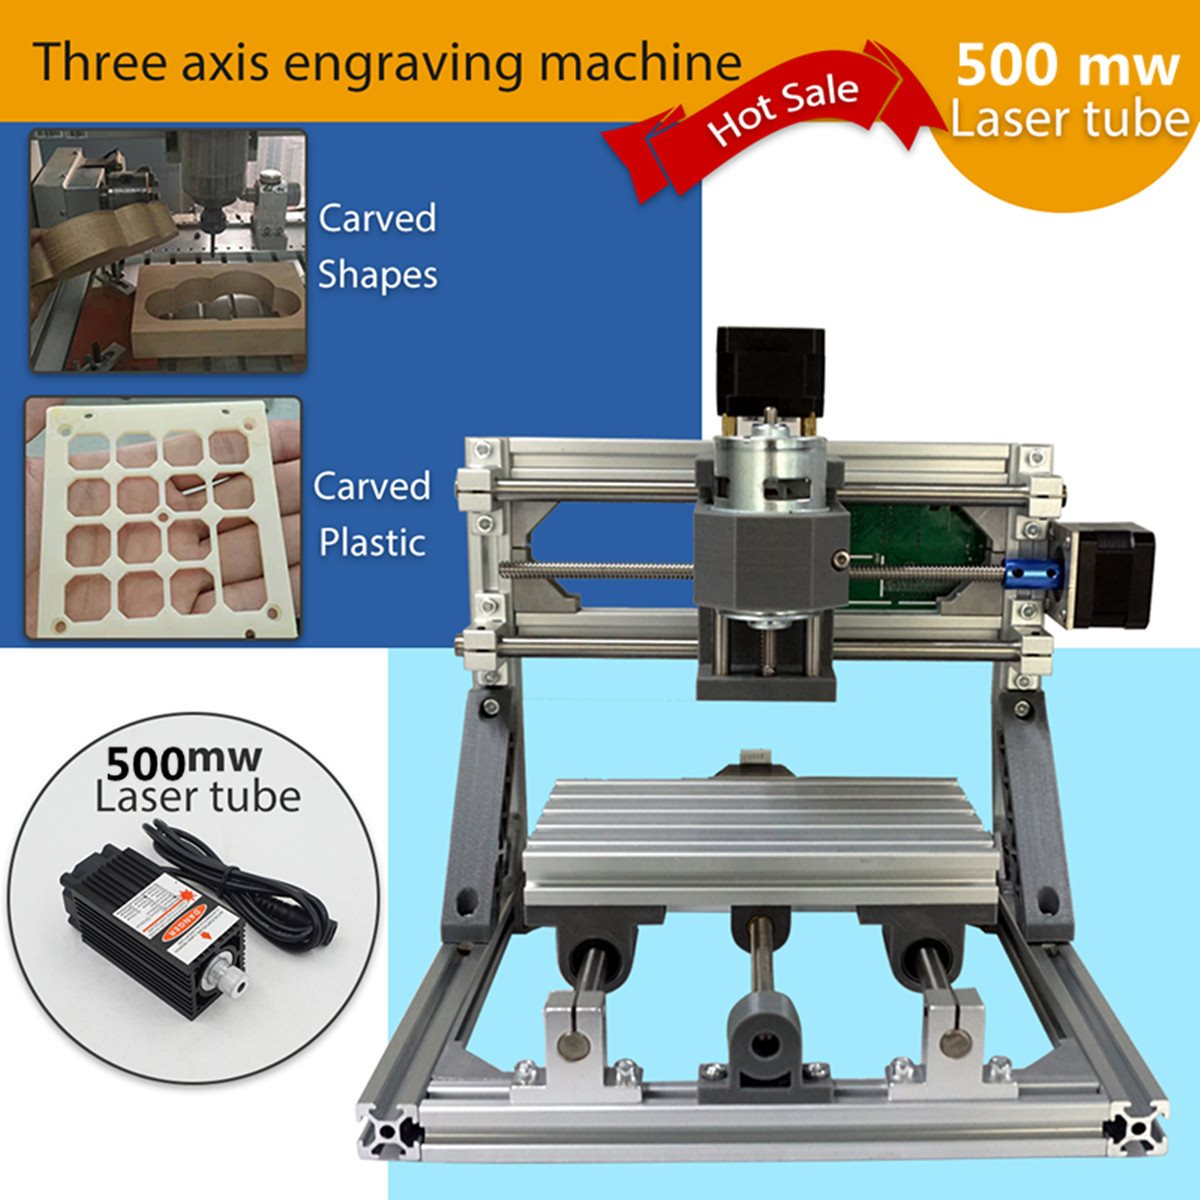 CNC 1610 500mw GRBL Control DIY 3 Axis pcb Milling Machine Wood Router Laser Engraving Best ToysCNC 1610 500mw GRBL Control DIY 3 Axis pcb Milling Machine Wood Router Laser Engraving Best Toys